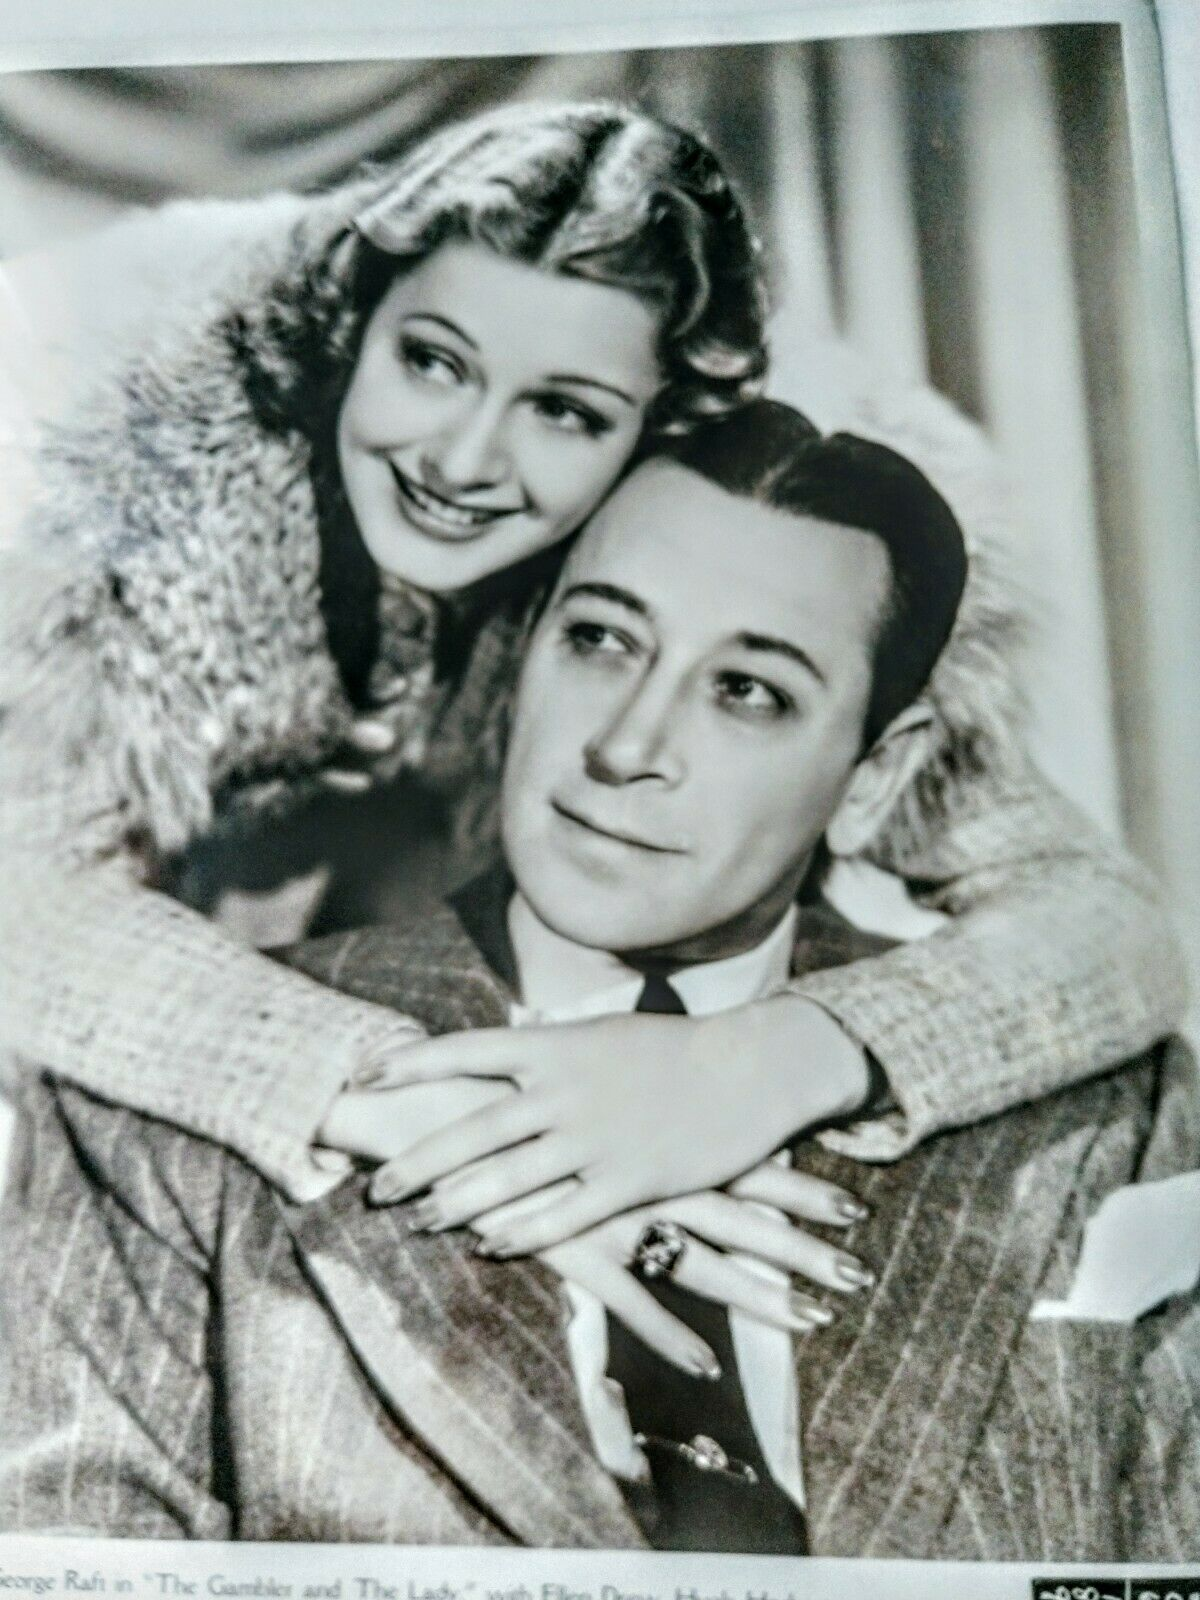 George Raft In The Gambler And The Lady Publicity Photo 1939 - $25.00